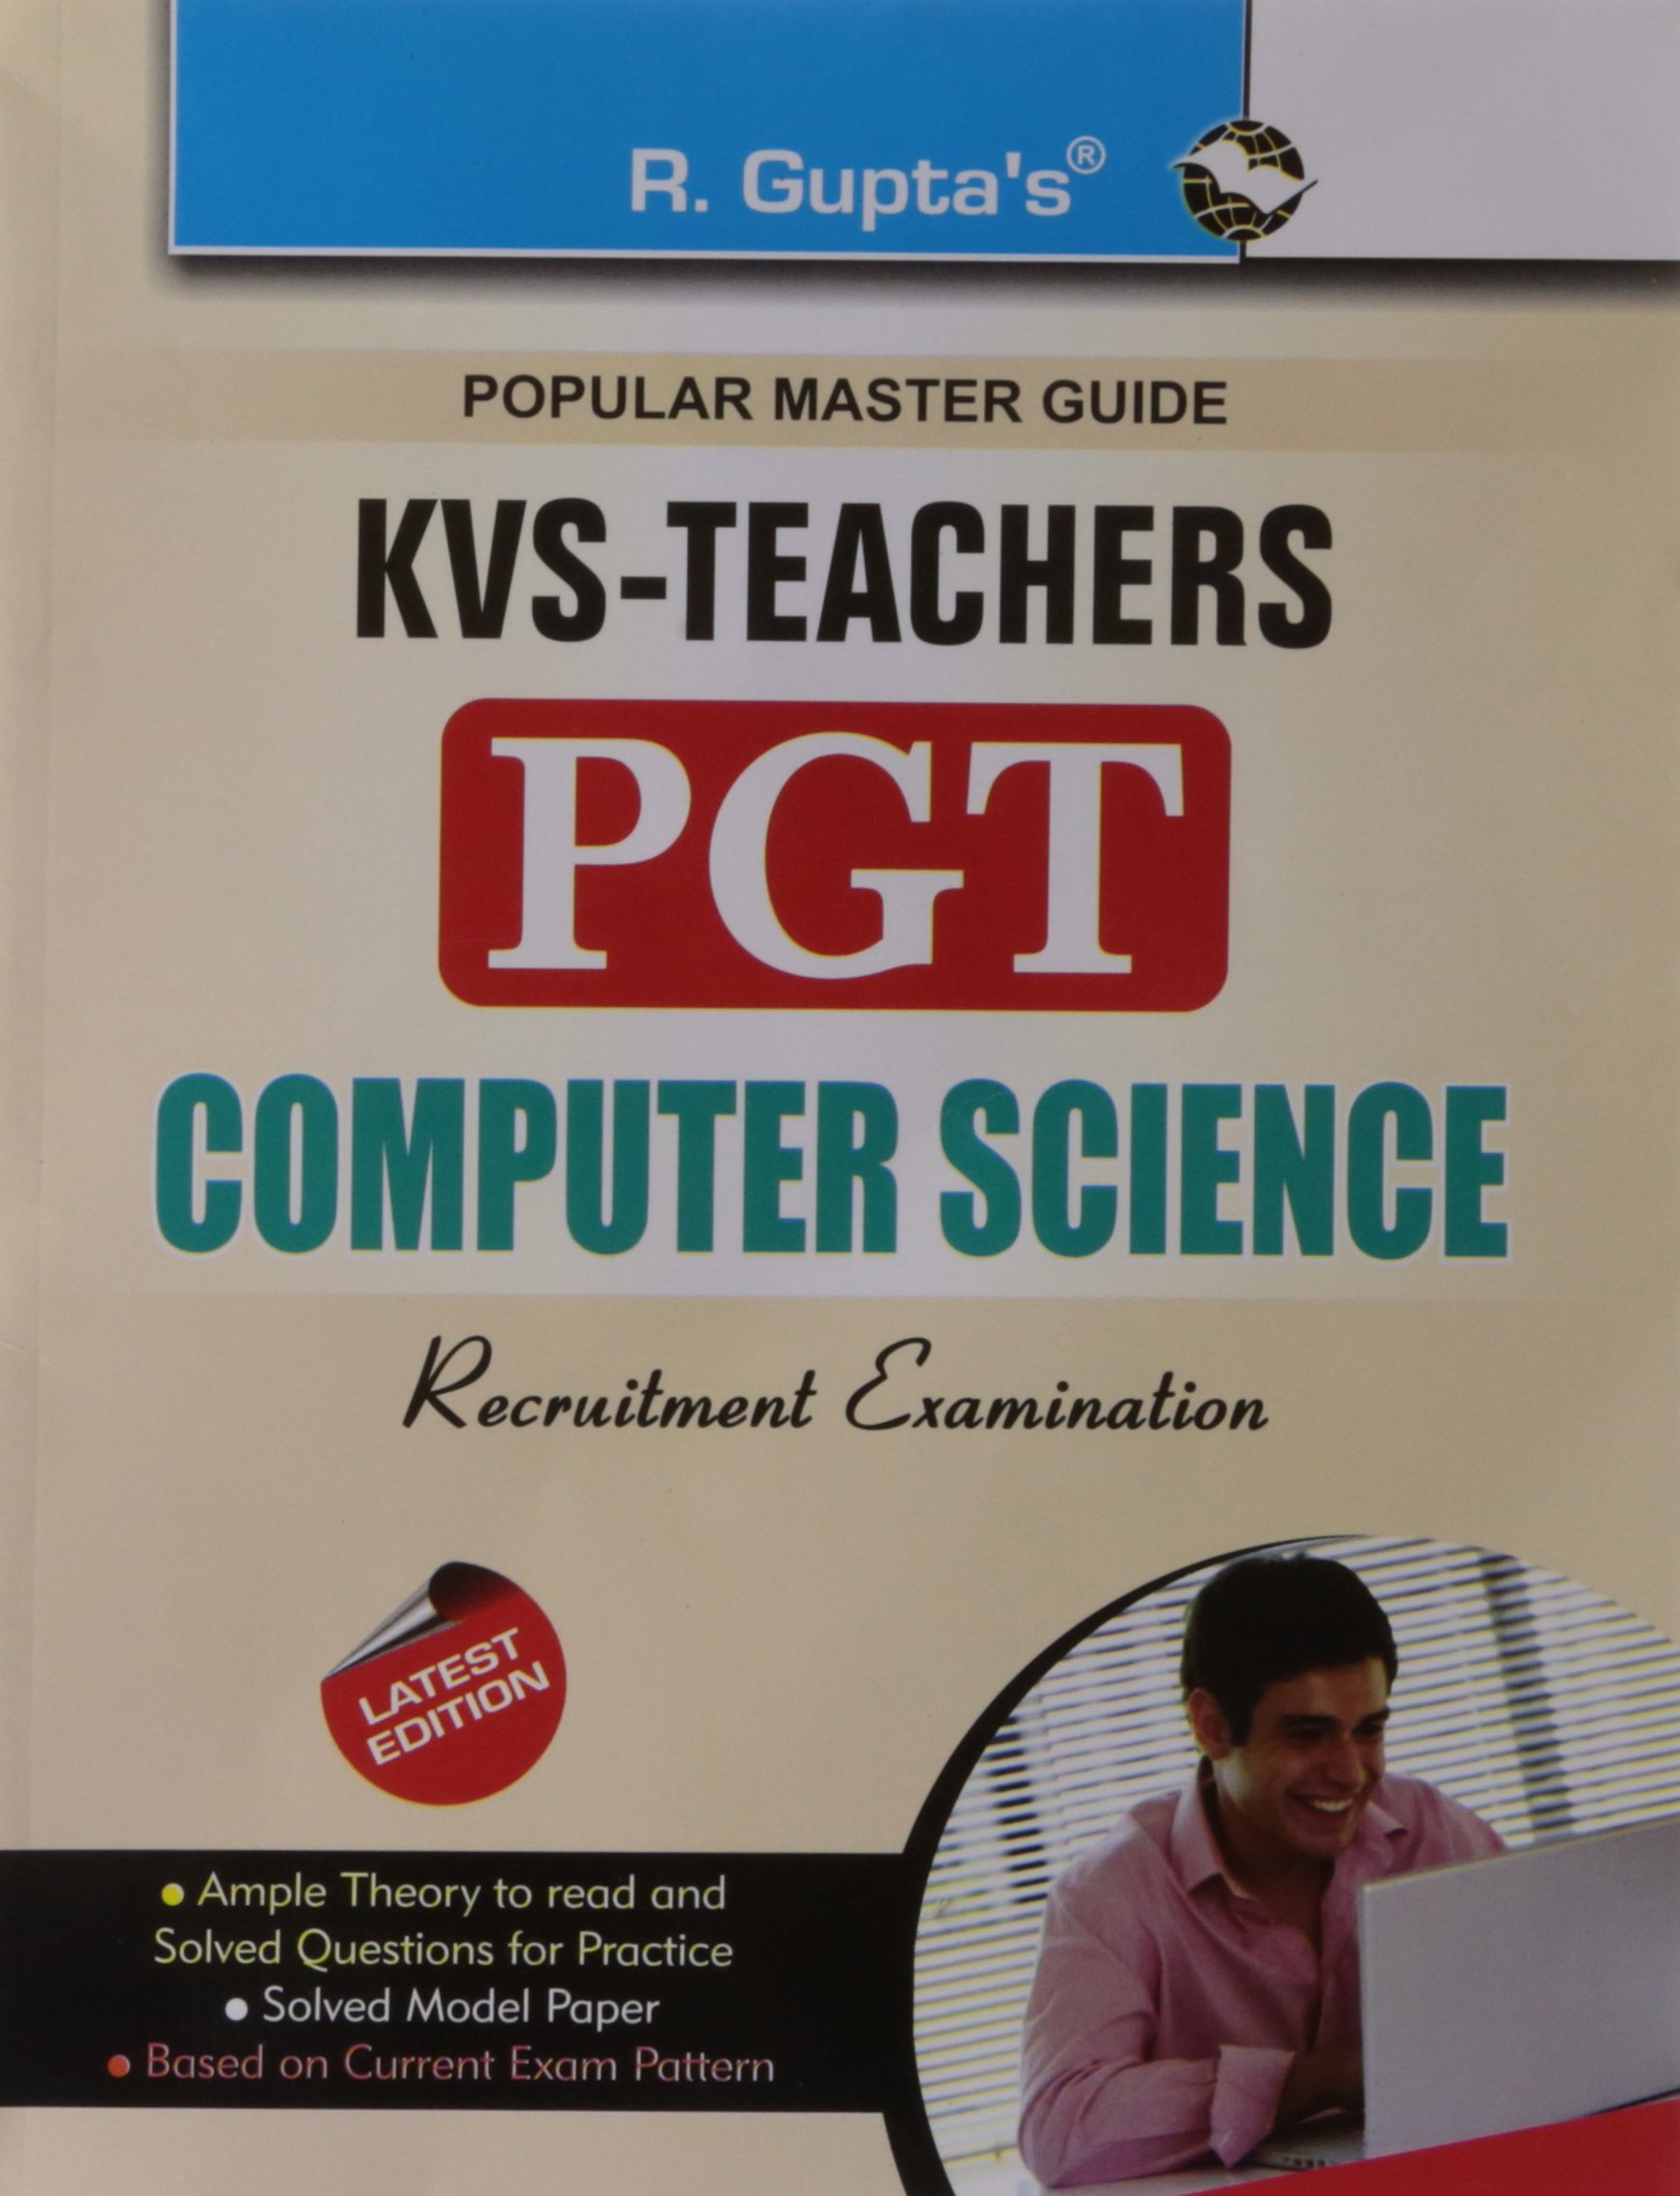 computer science papers Cbse class 12 computer science question papers: get previous year central board of secondary education board exam computer science question papers for class 12th.